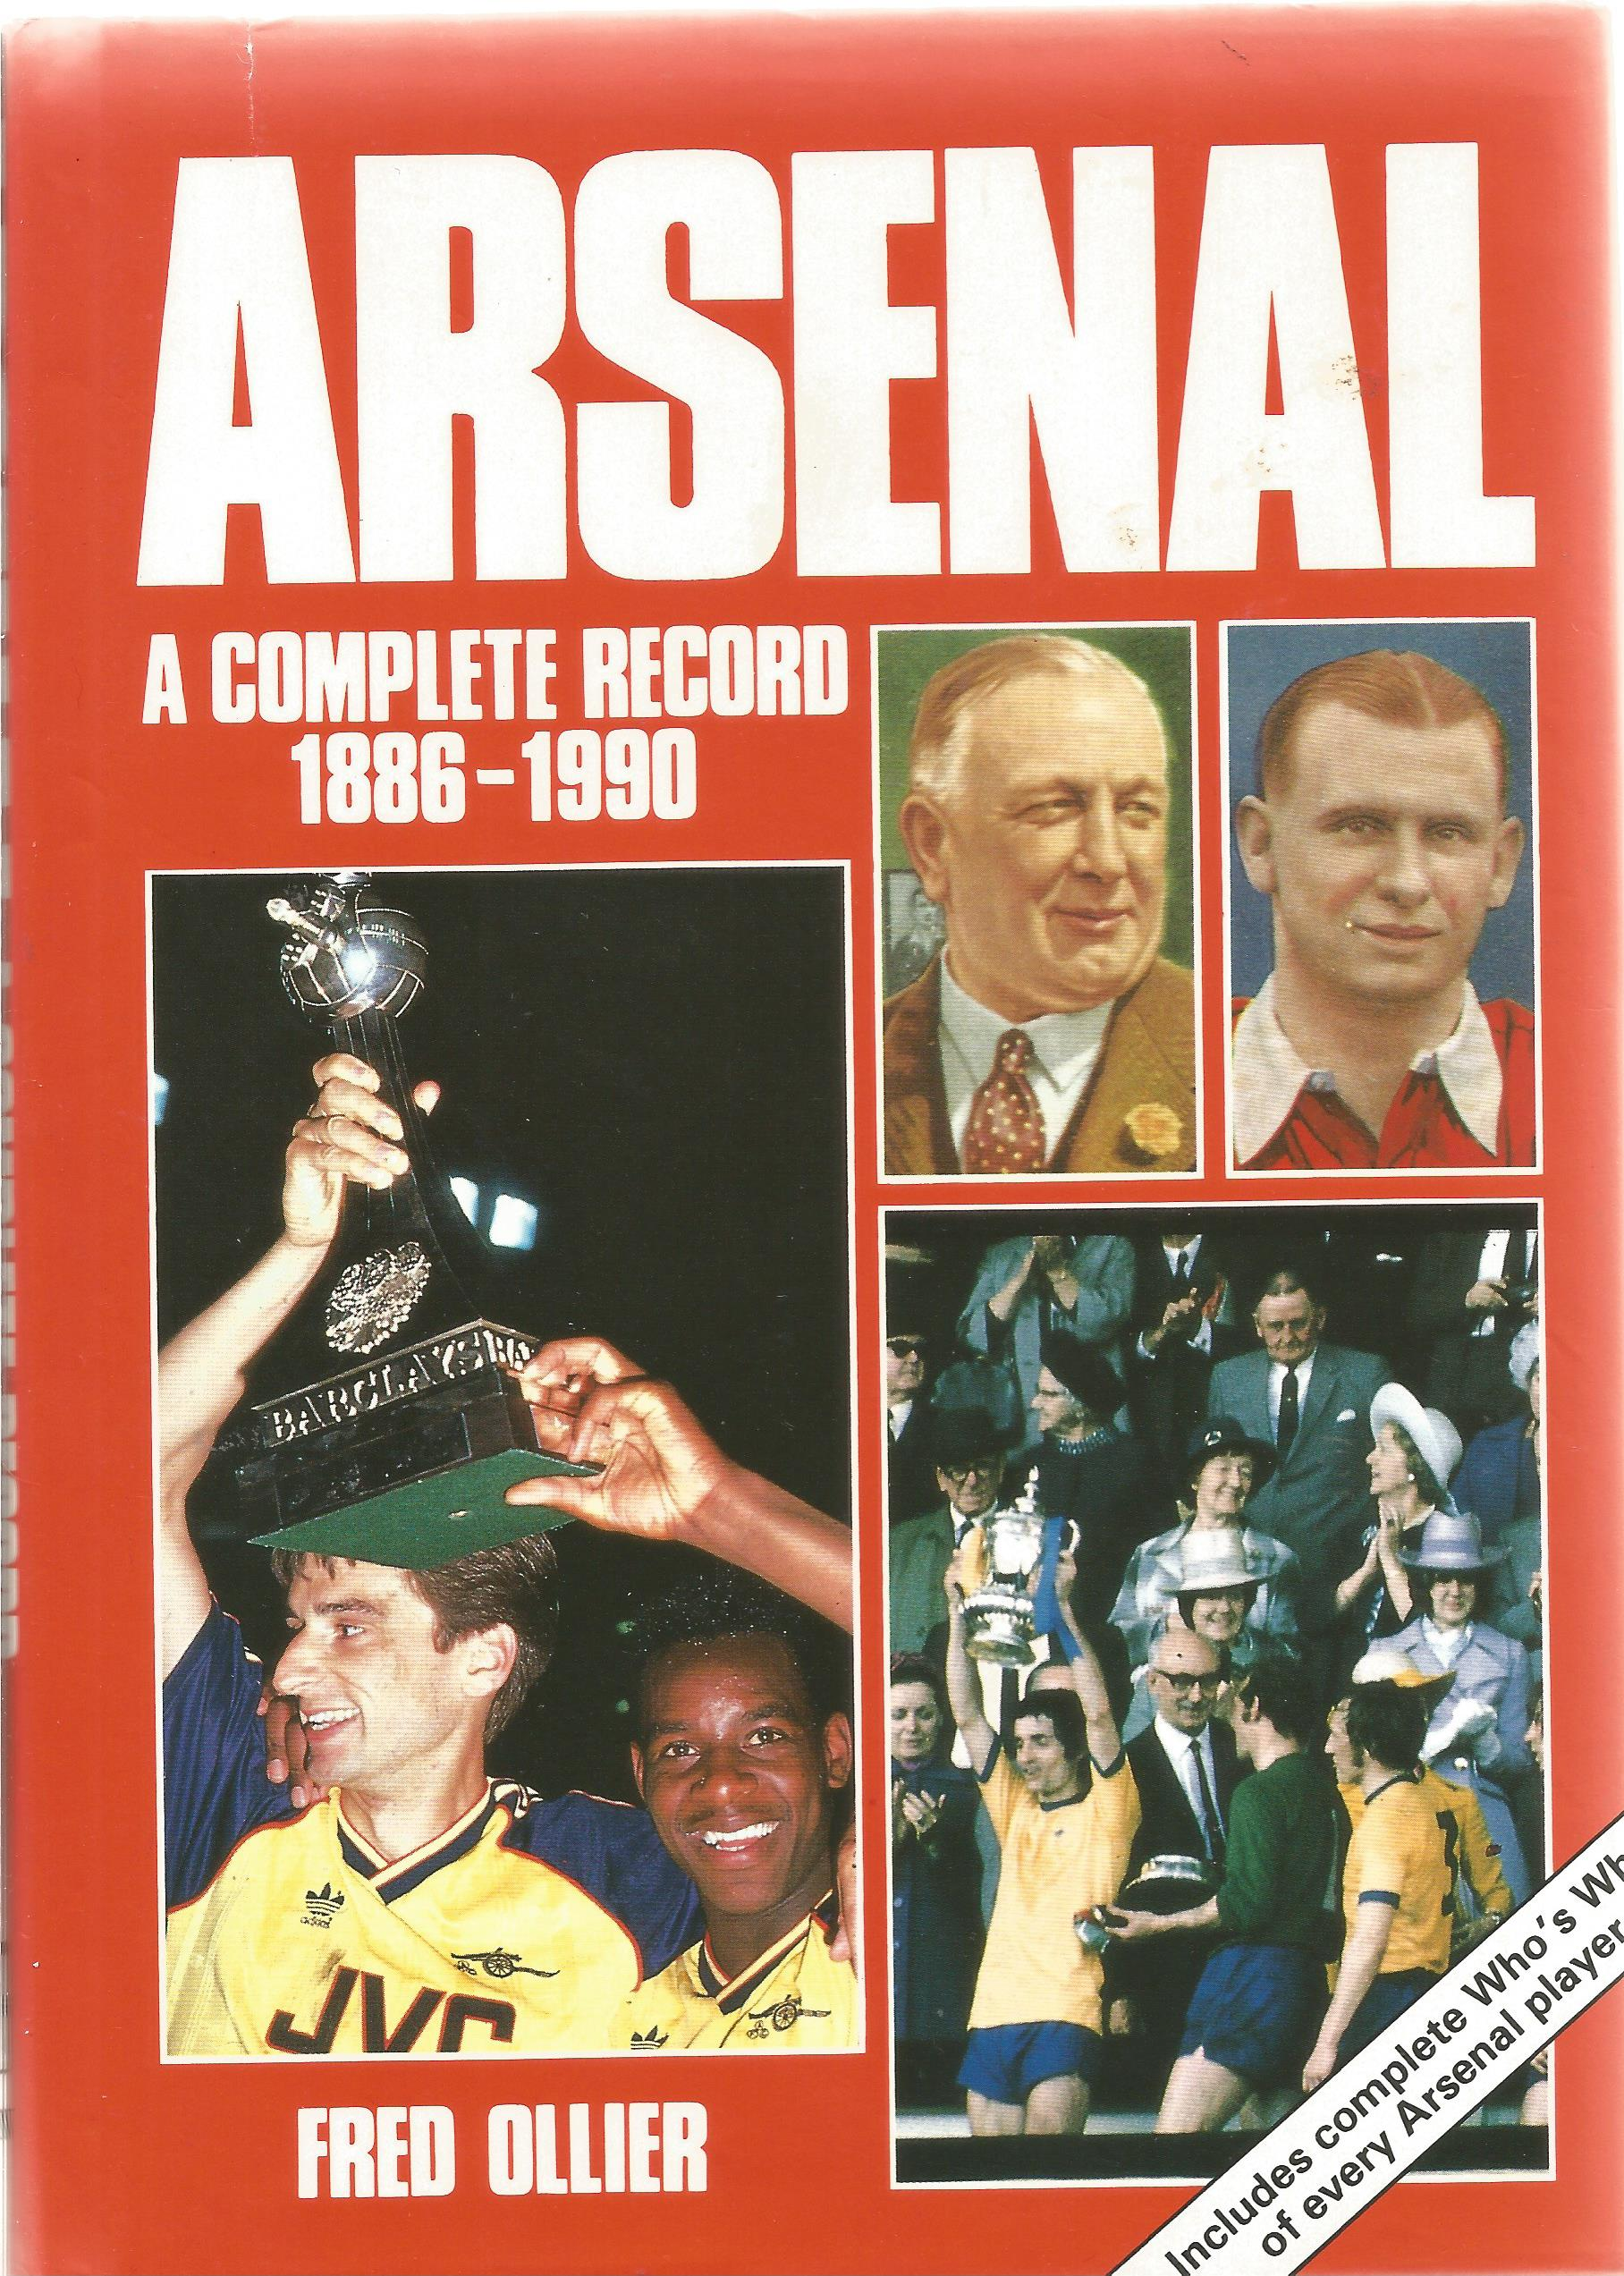 Arsenal A Complete Record 1886 1990 by Fred Ollier. First Edition Hardback book. Dust jacket and